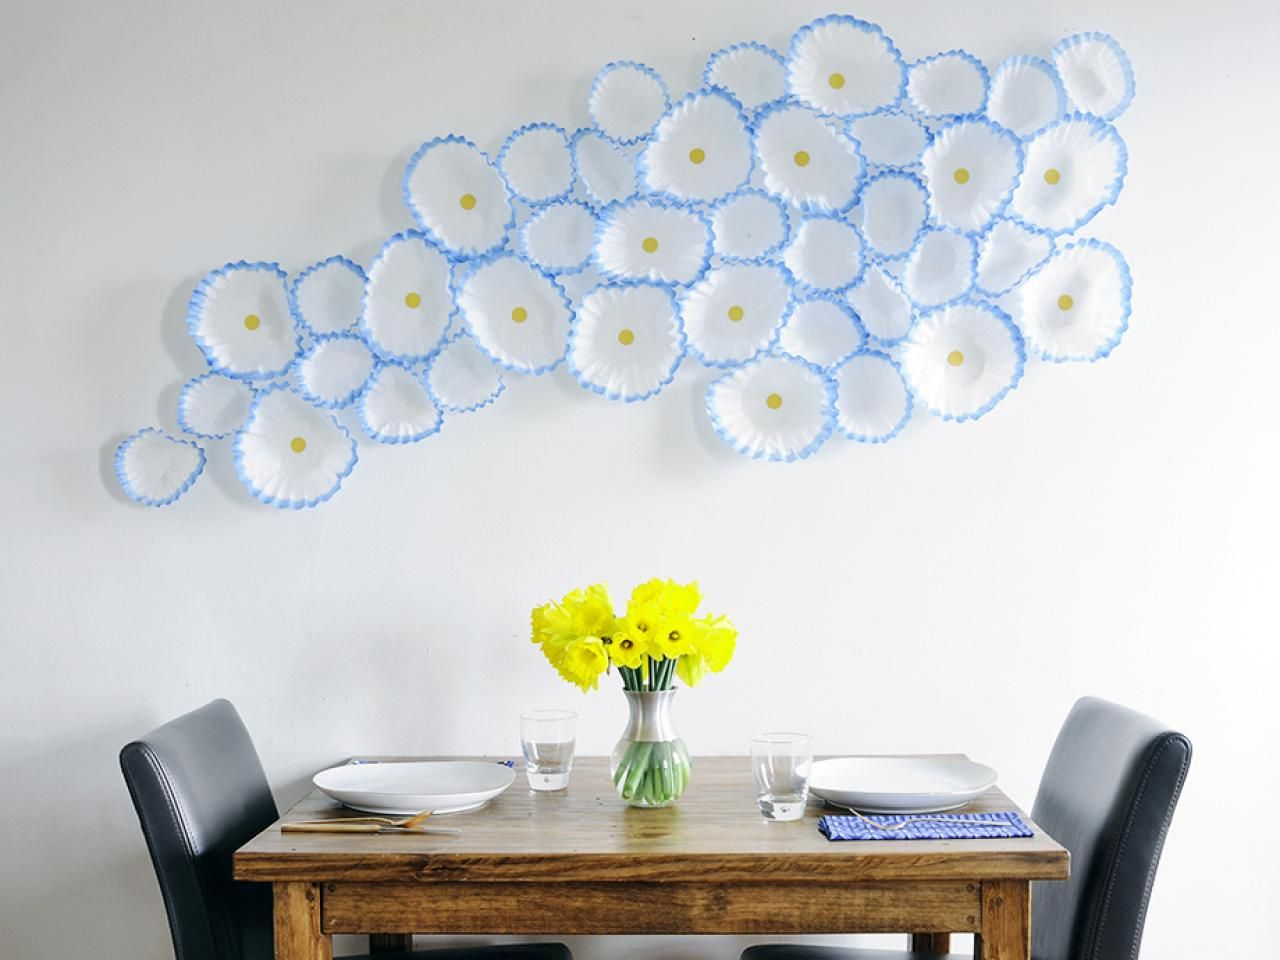 How To Make Floral Wall Art With Coffee Filters